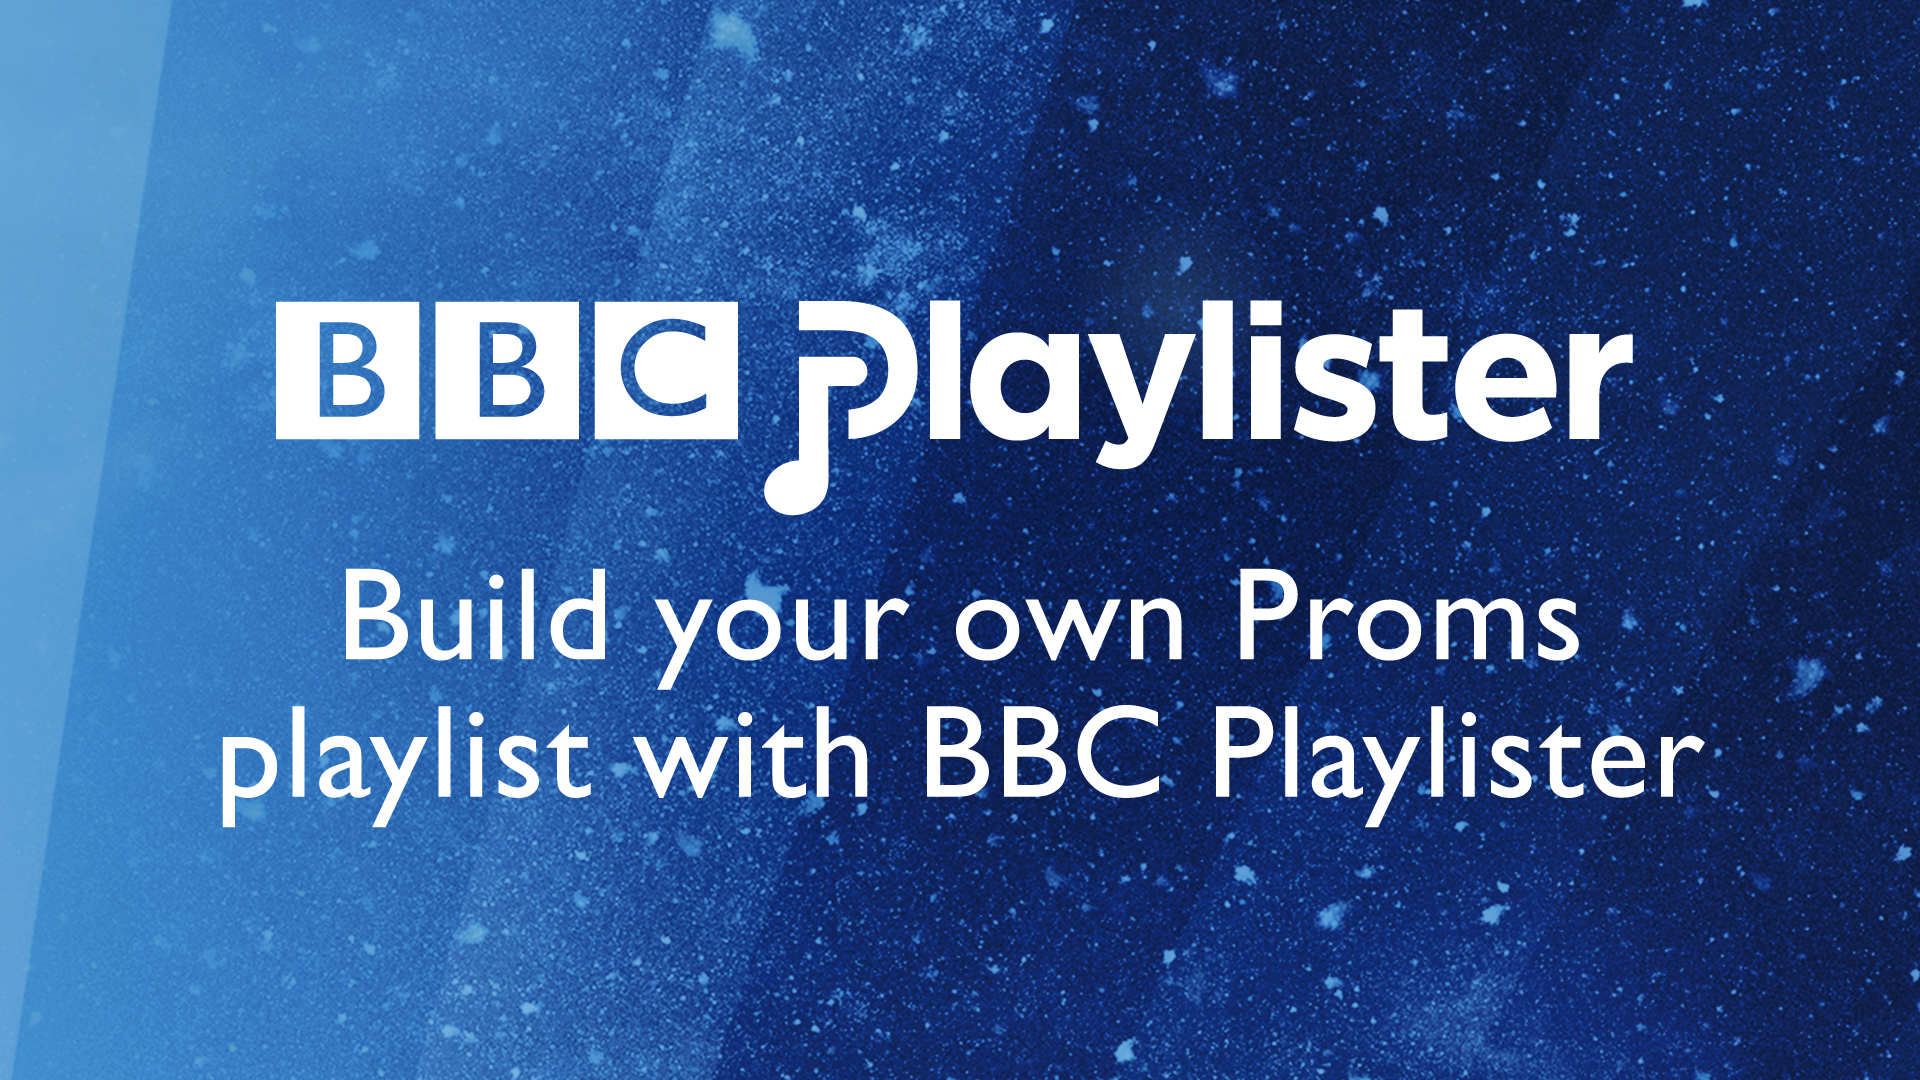 Build your own Proms playlist with BBC Playlister